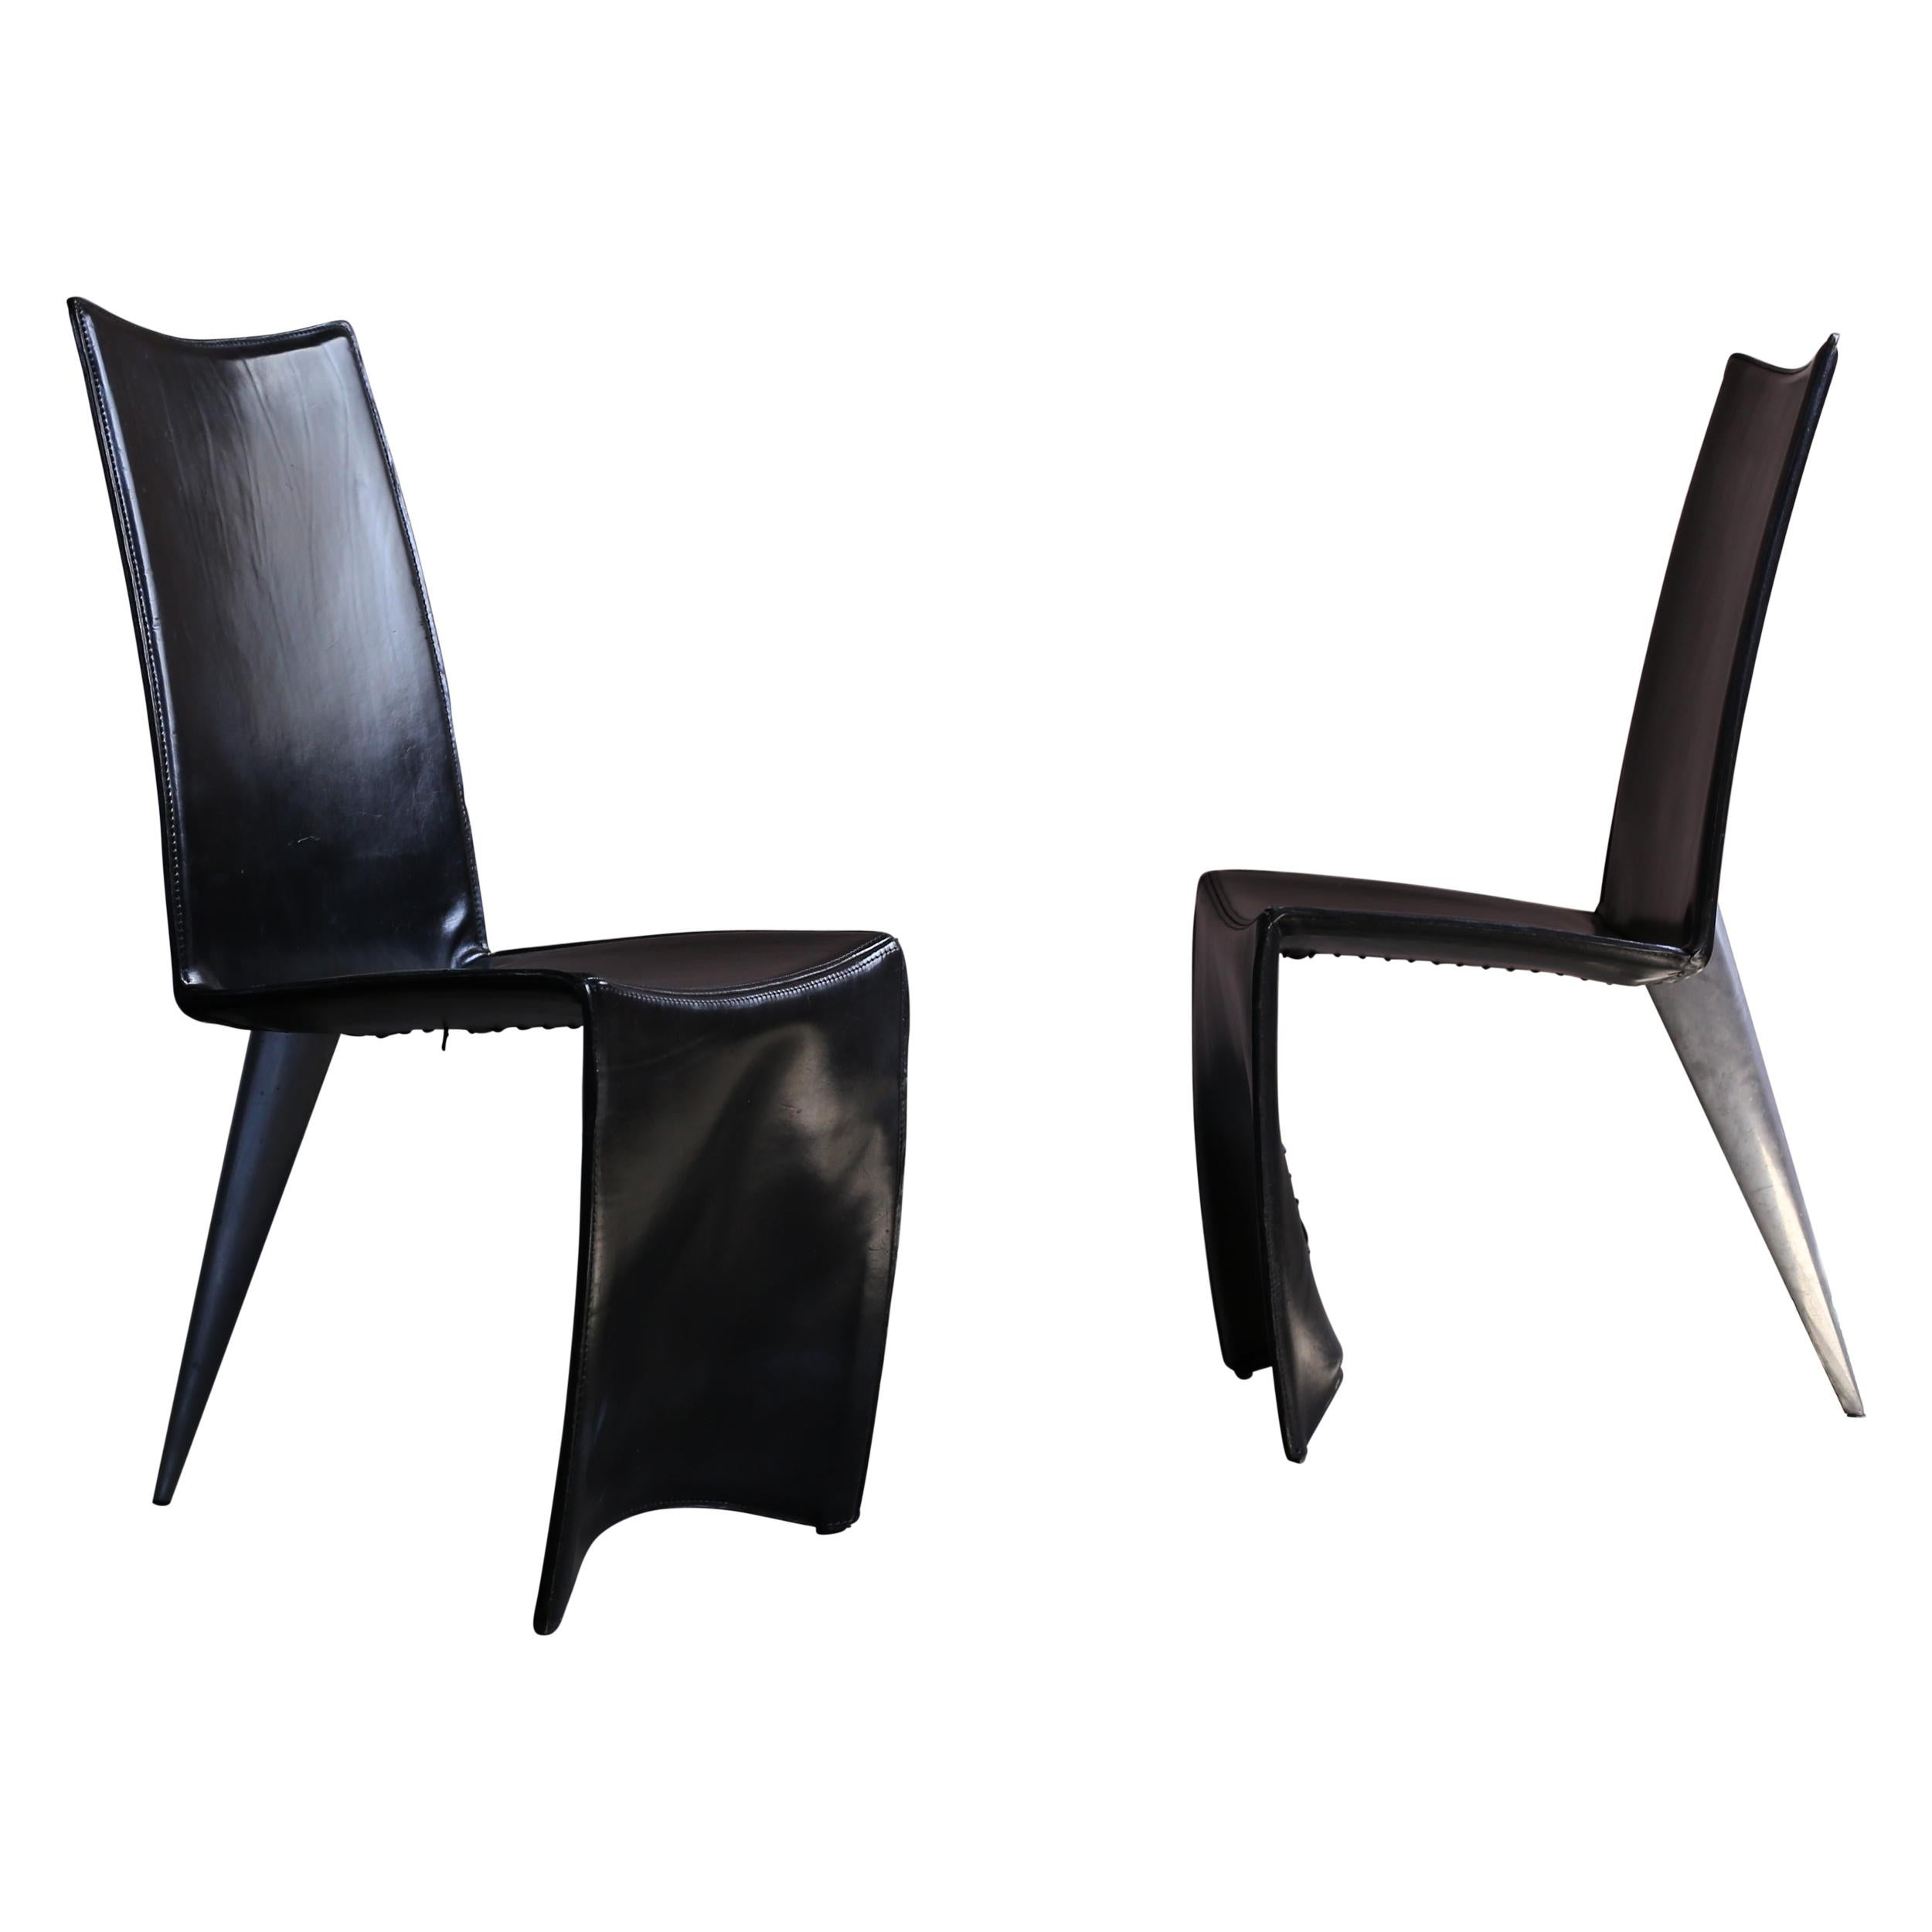 Set of Chairs Designed by Philippe Starck from Manin, Tokyo